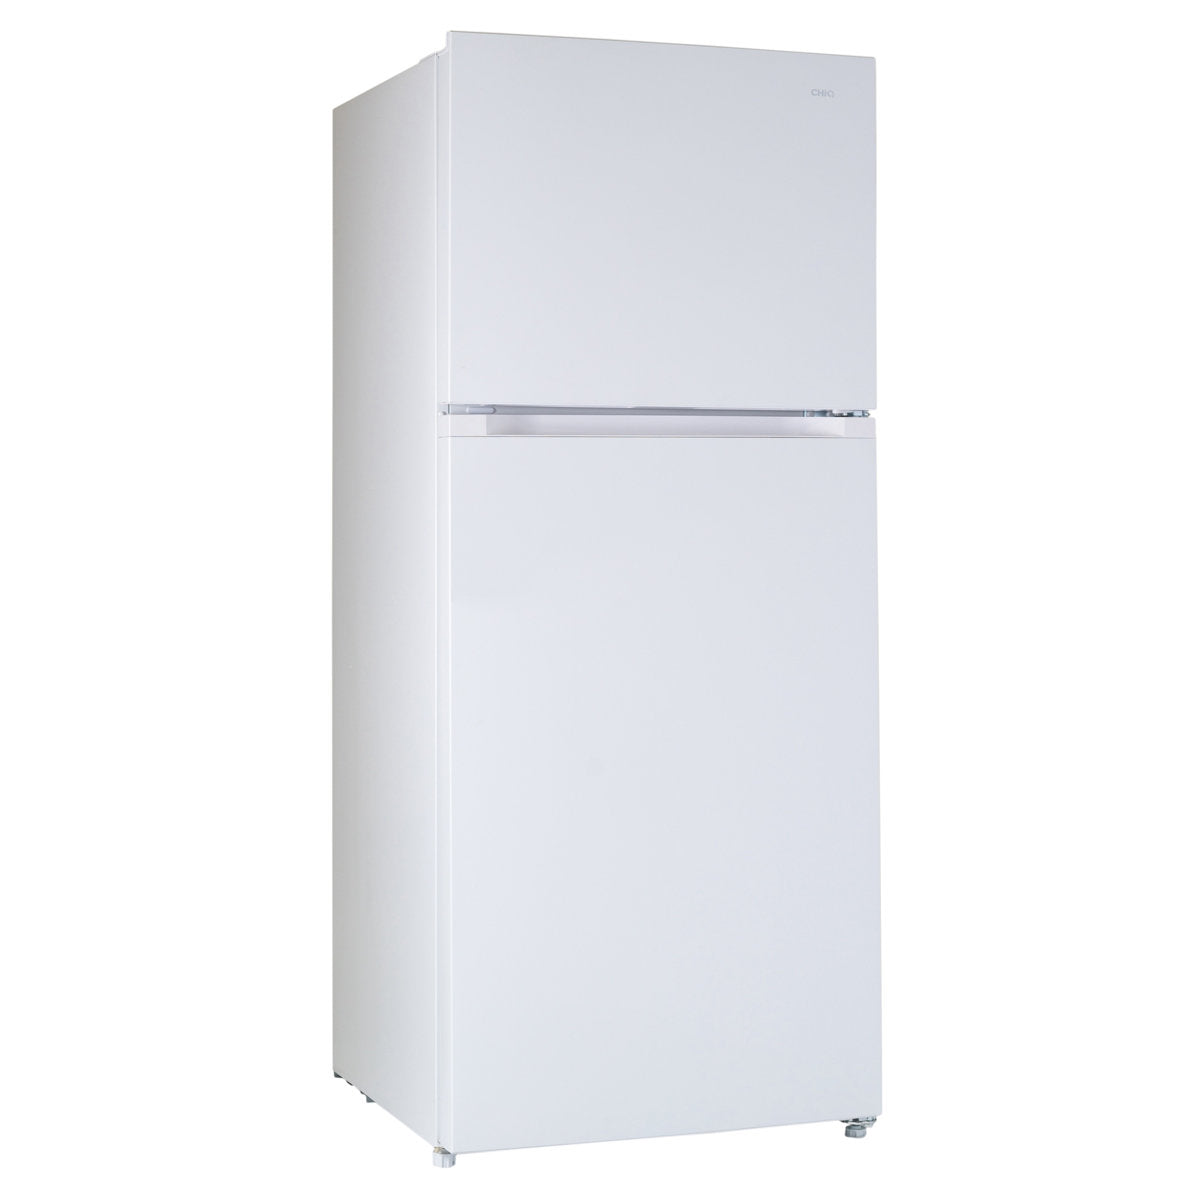 CHiQ CTM435W 435L Top Mount Fridge